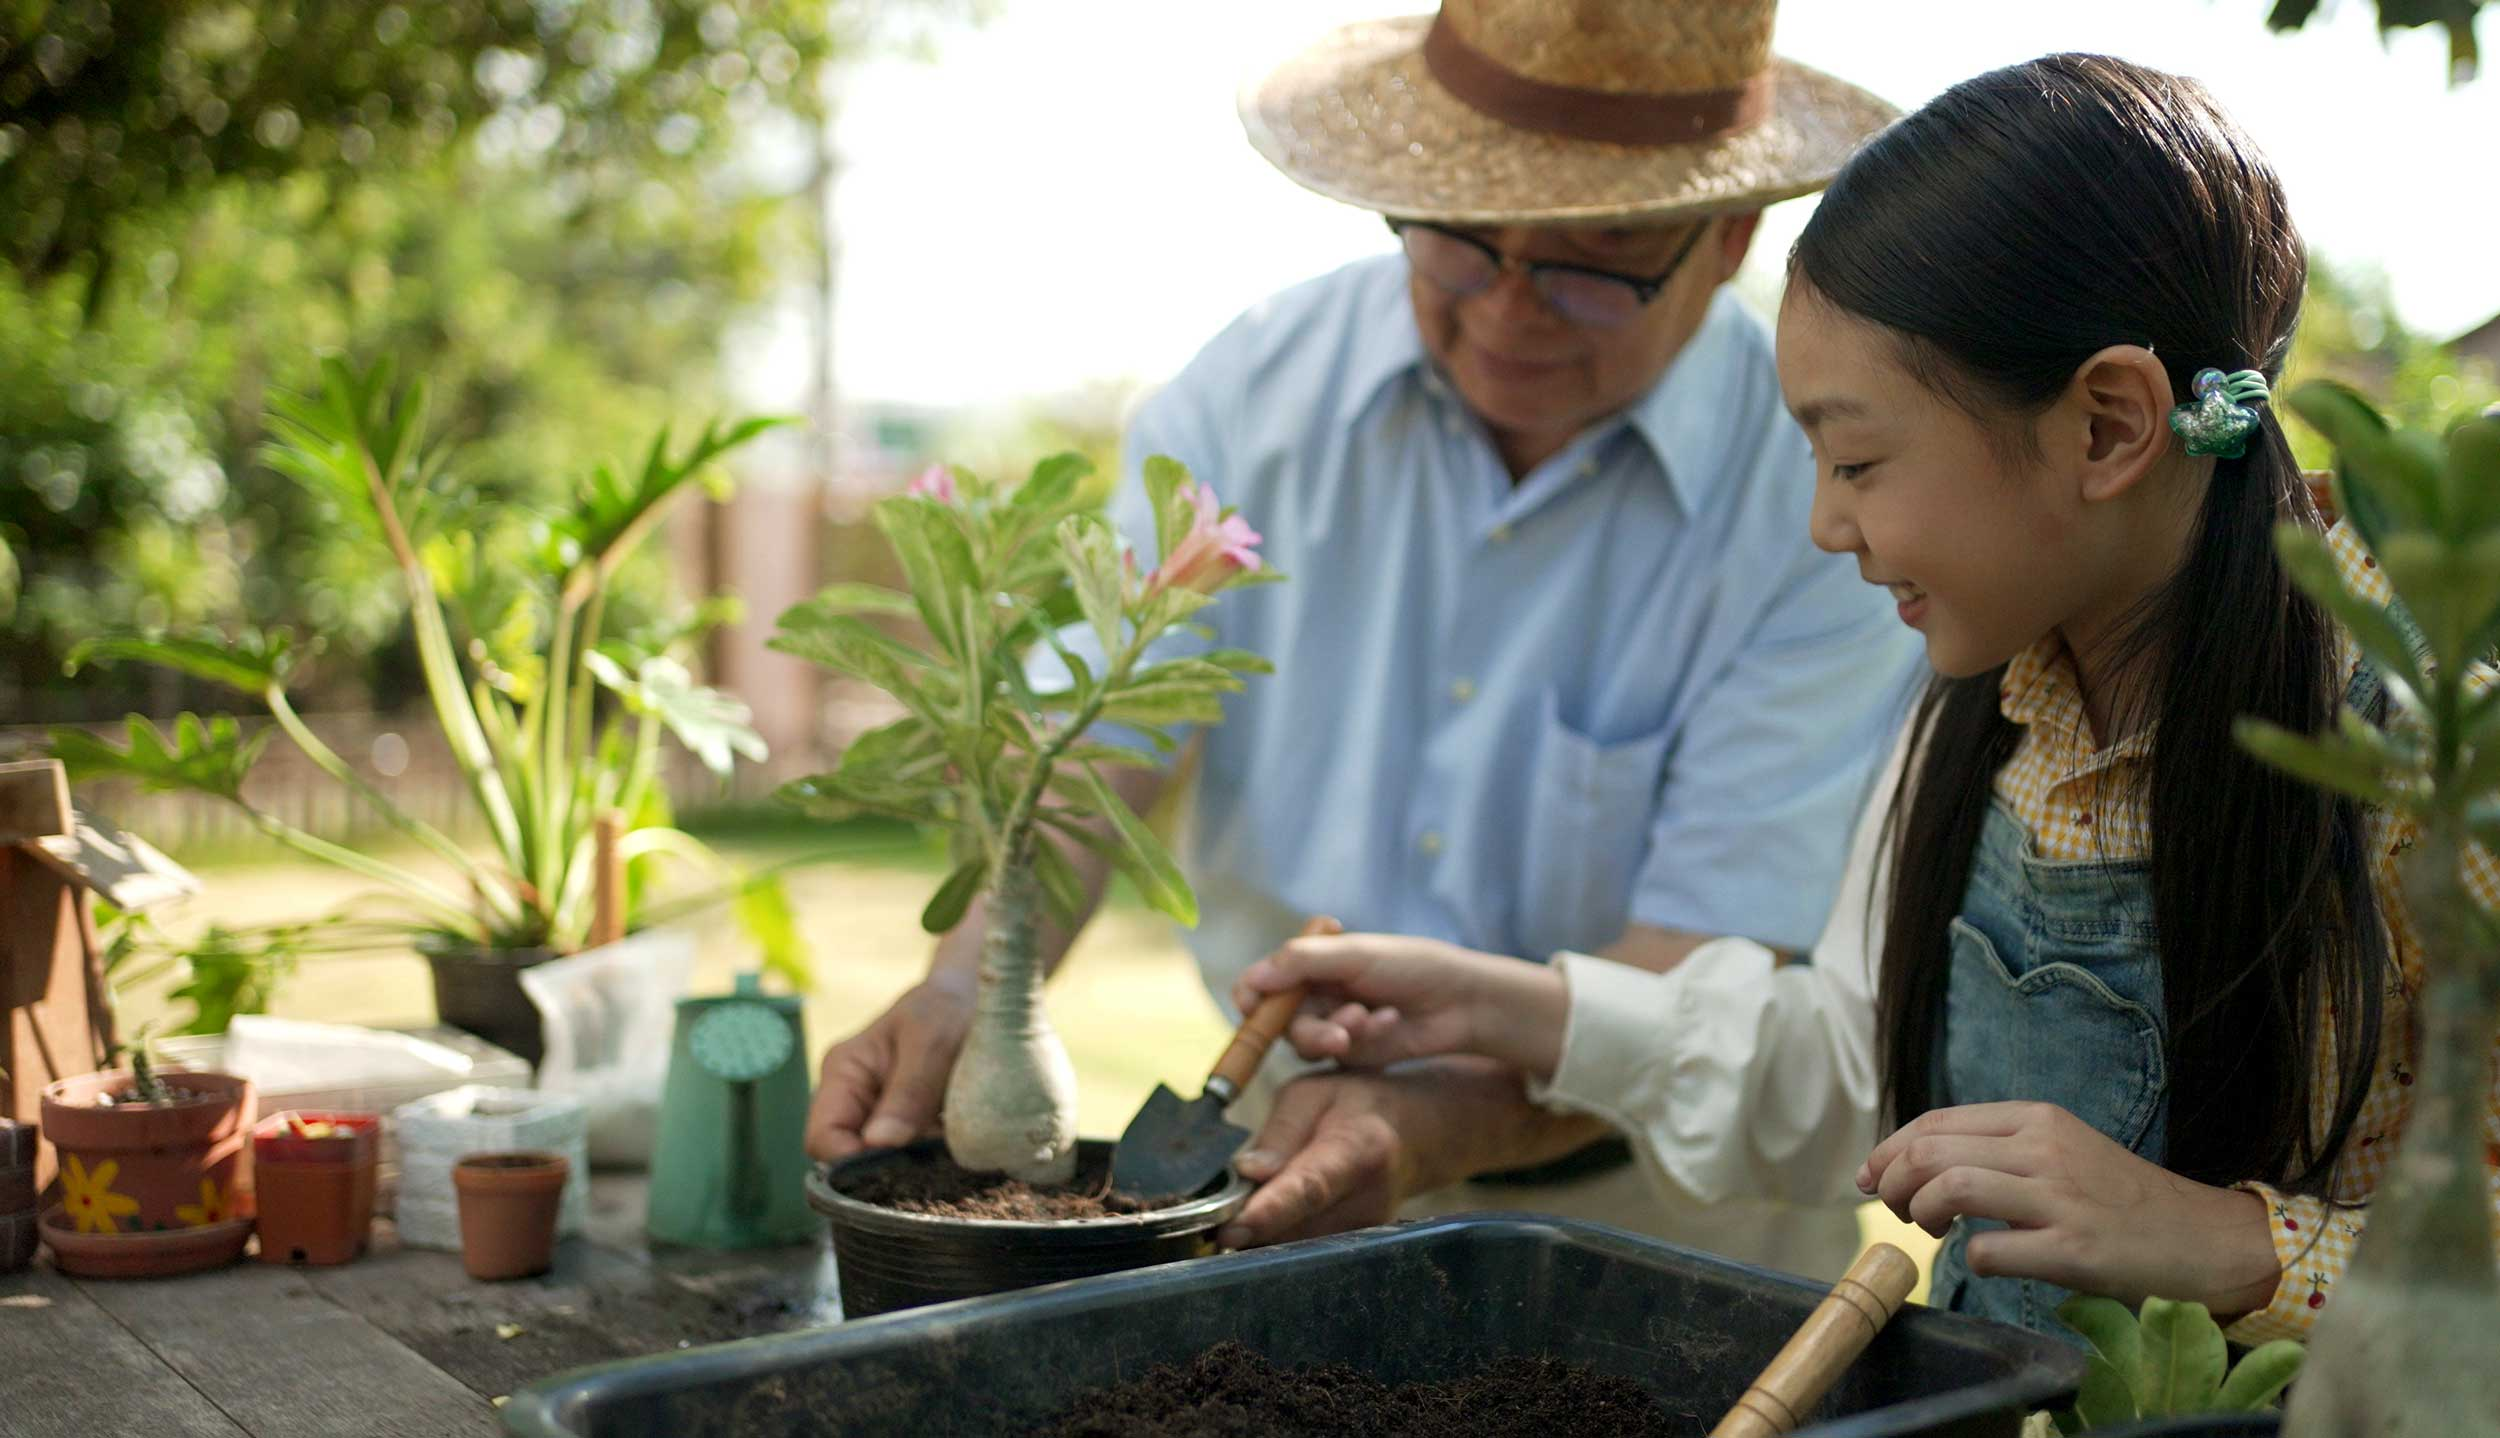 An Asian grandfather and his granddaughter pot plants together.